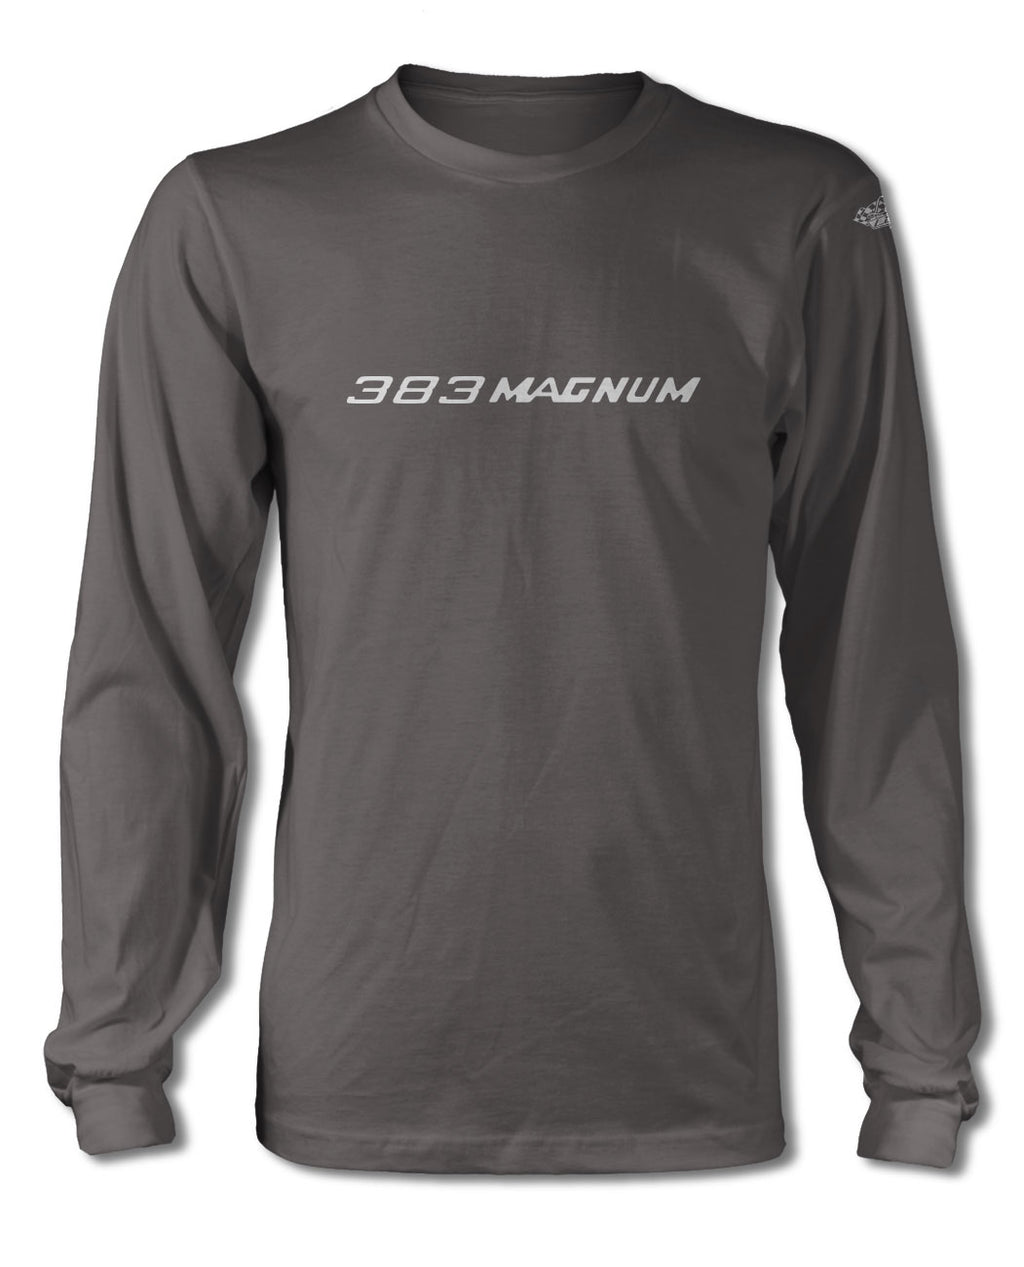 Dodge 383 Magnum Emblem T-Shirt - Long Sleeves - Emblem